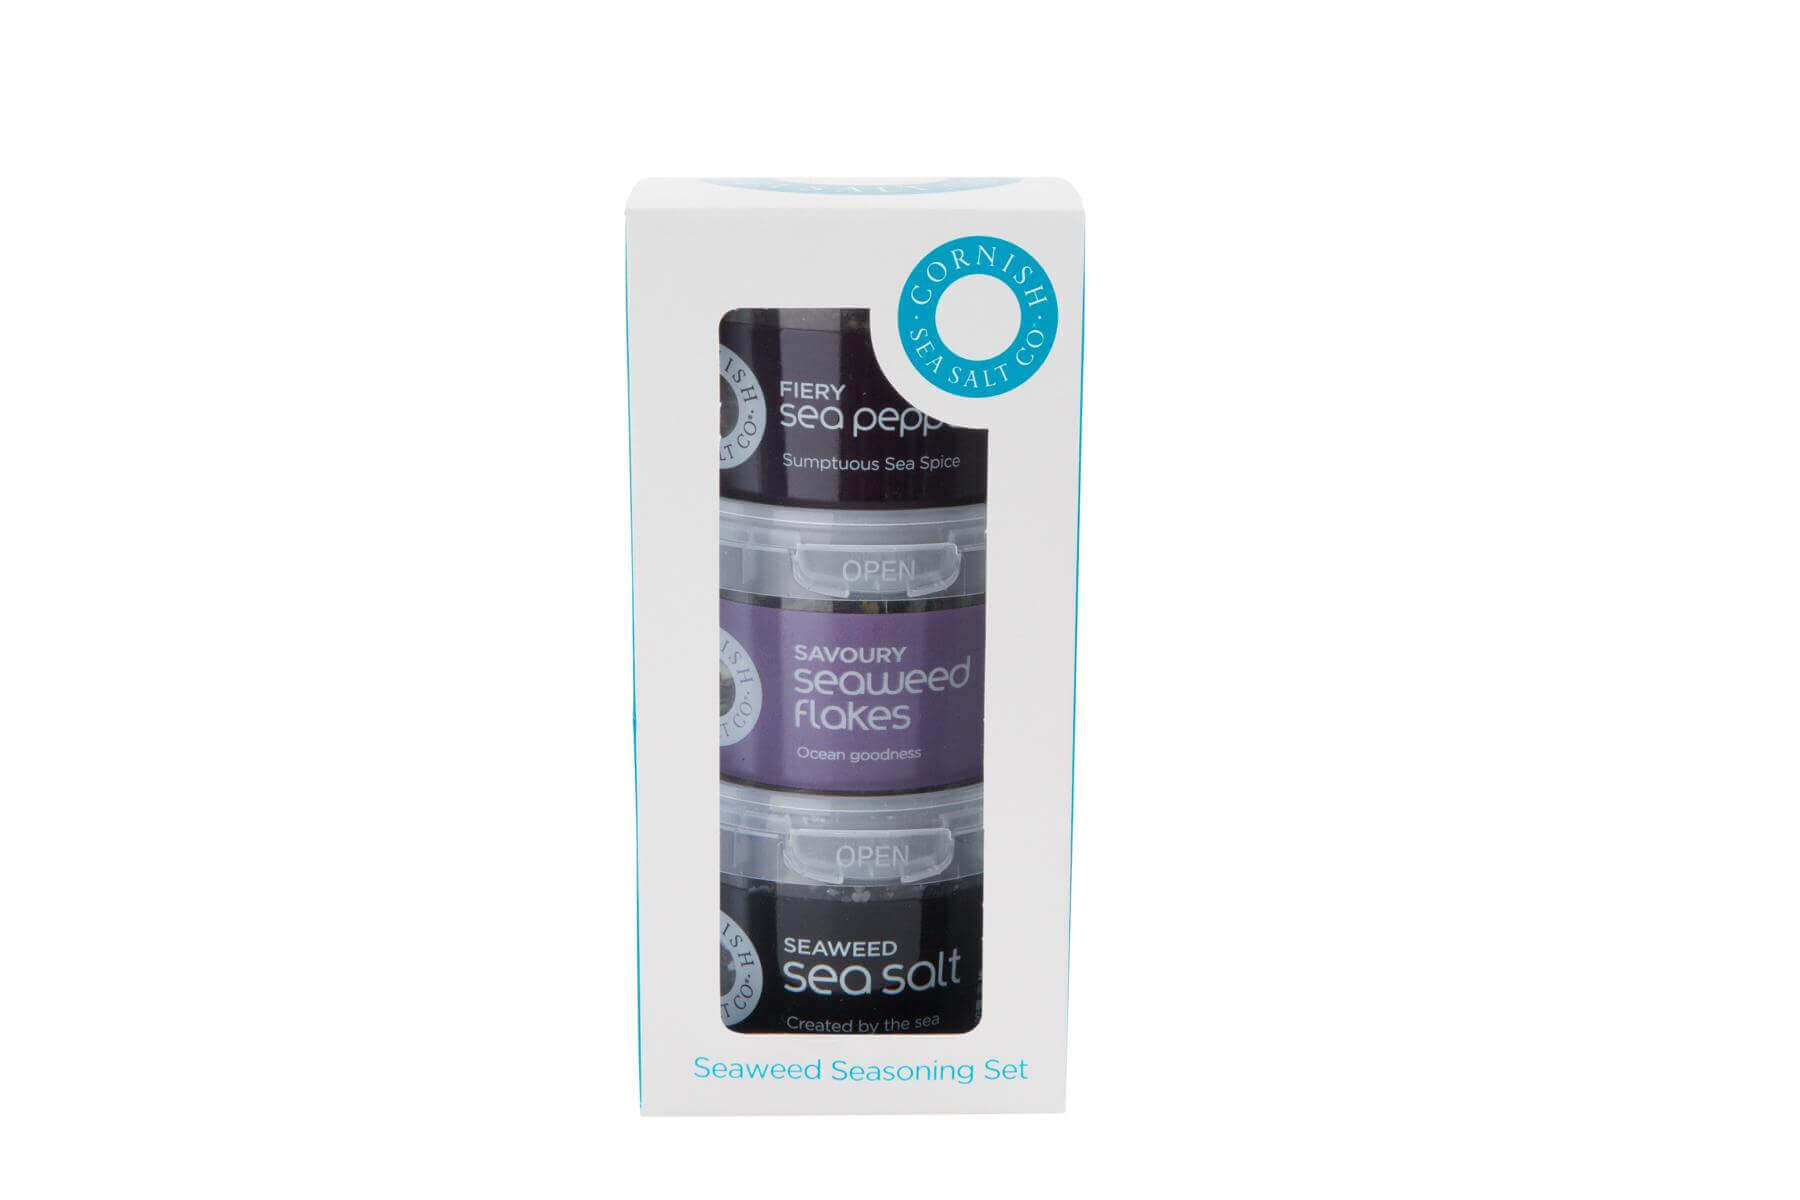 Cornish Sea Salt - Geschenkset- Seaweed sea salt 60g, fiery sea pepper 40g und Savoury seaweed flakes 18g